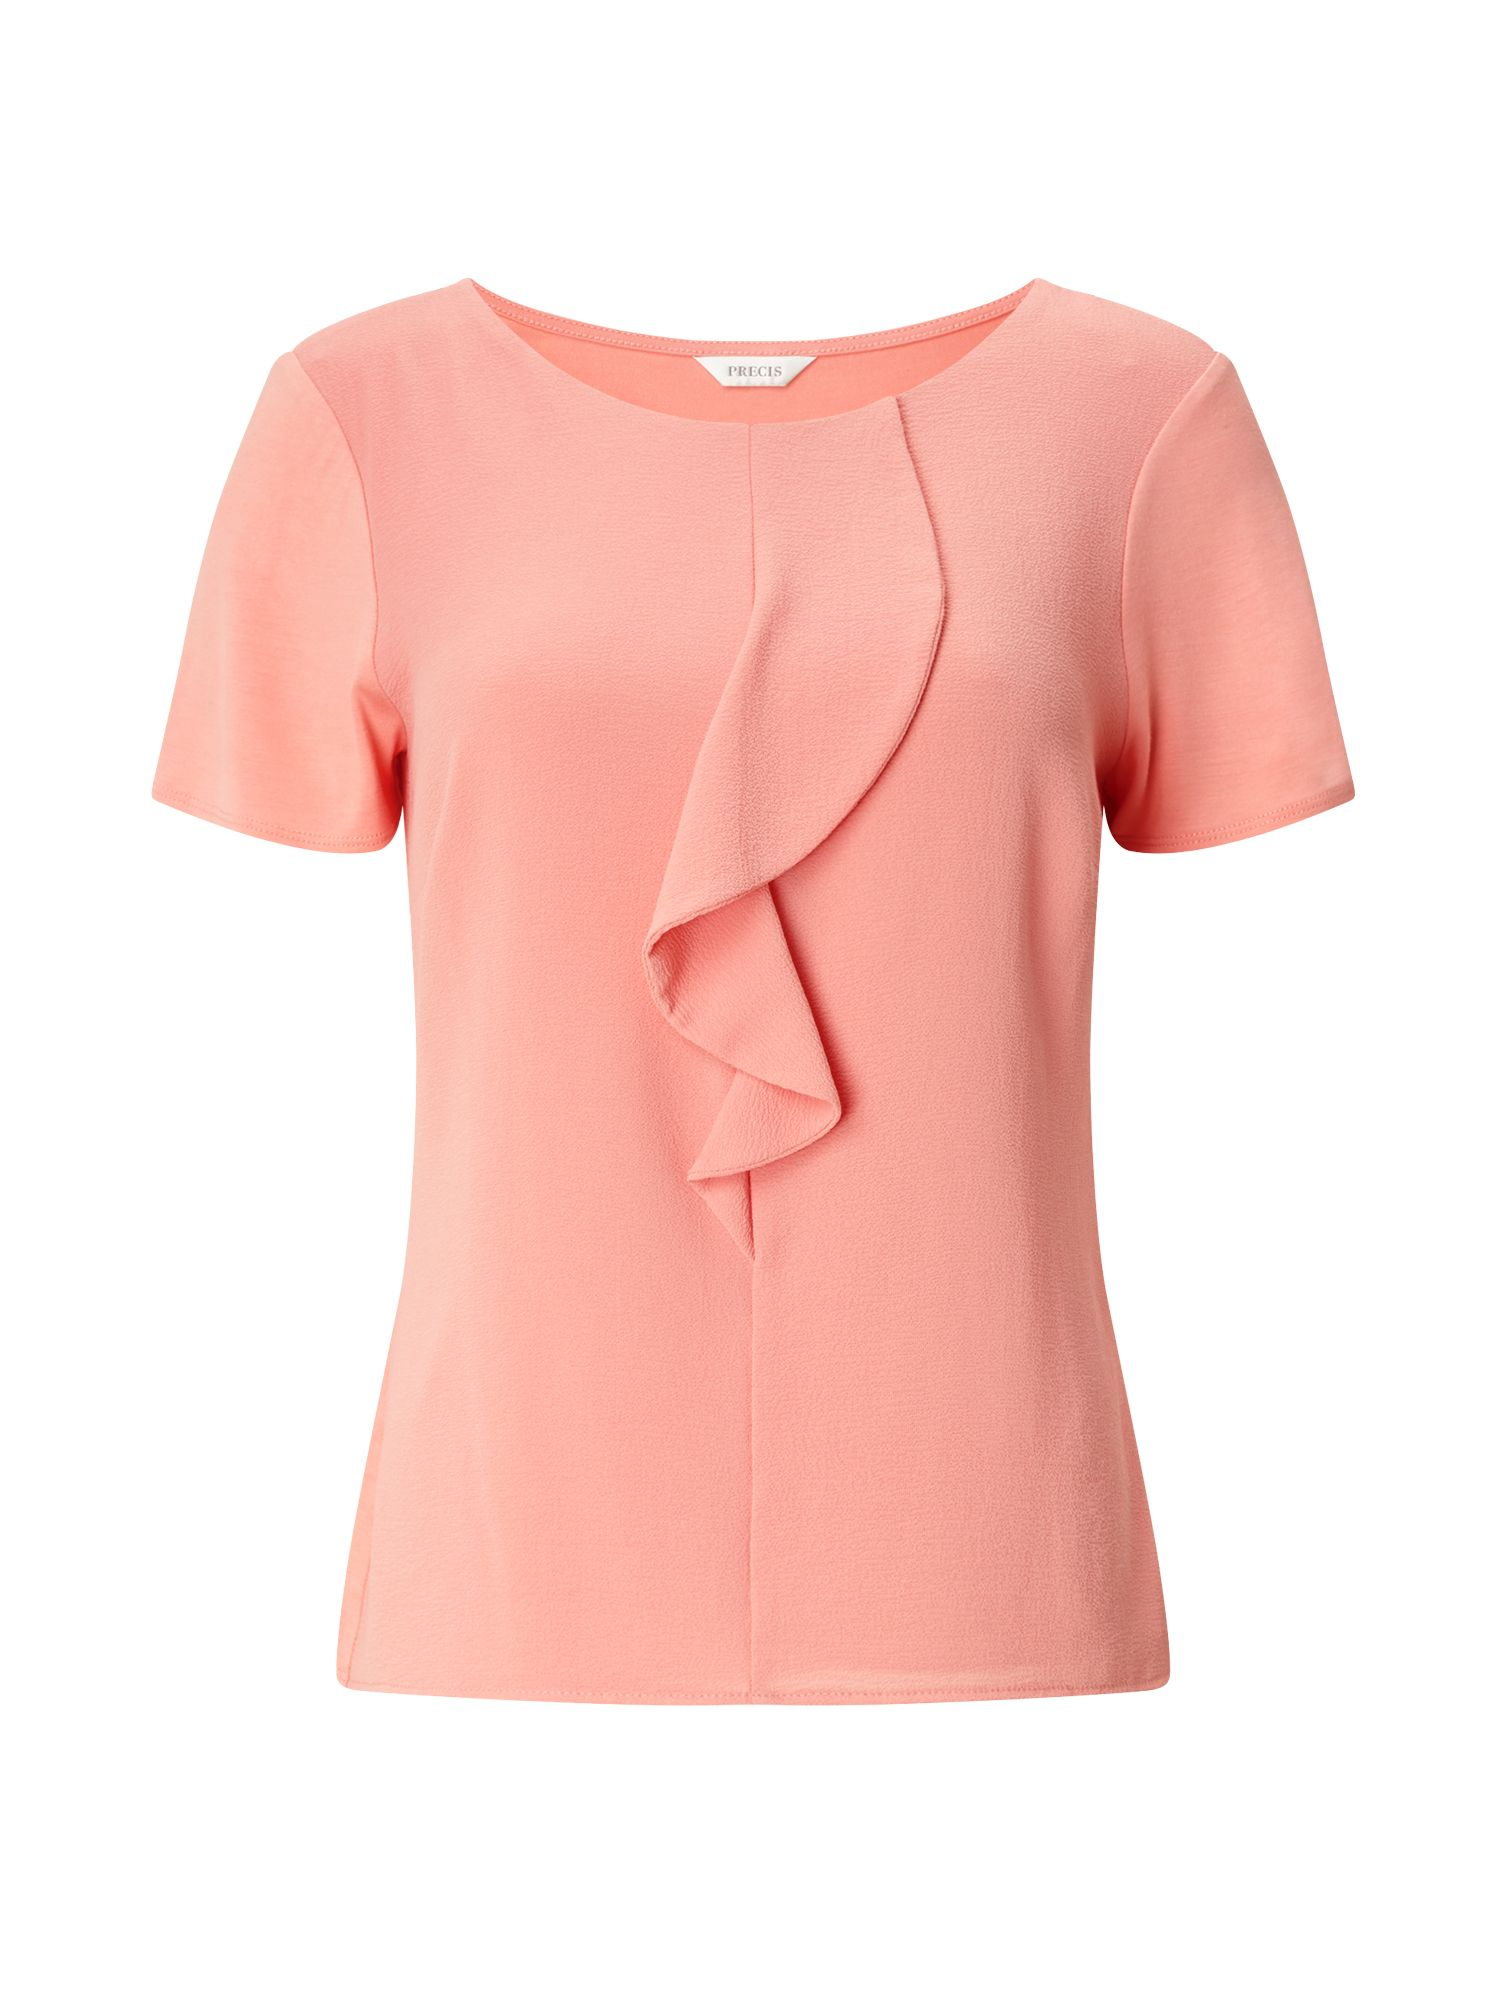 Precis Petite Petite Ruffle Front Top, Orange